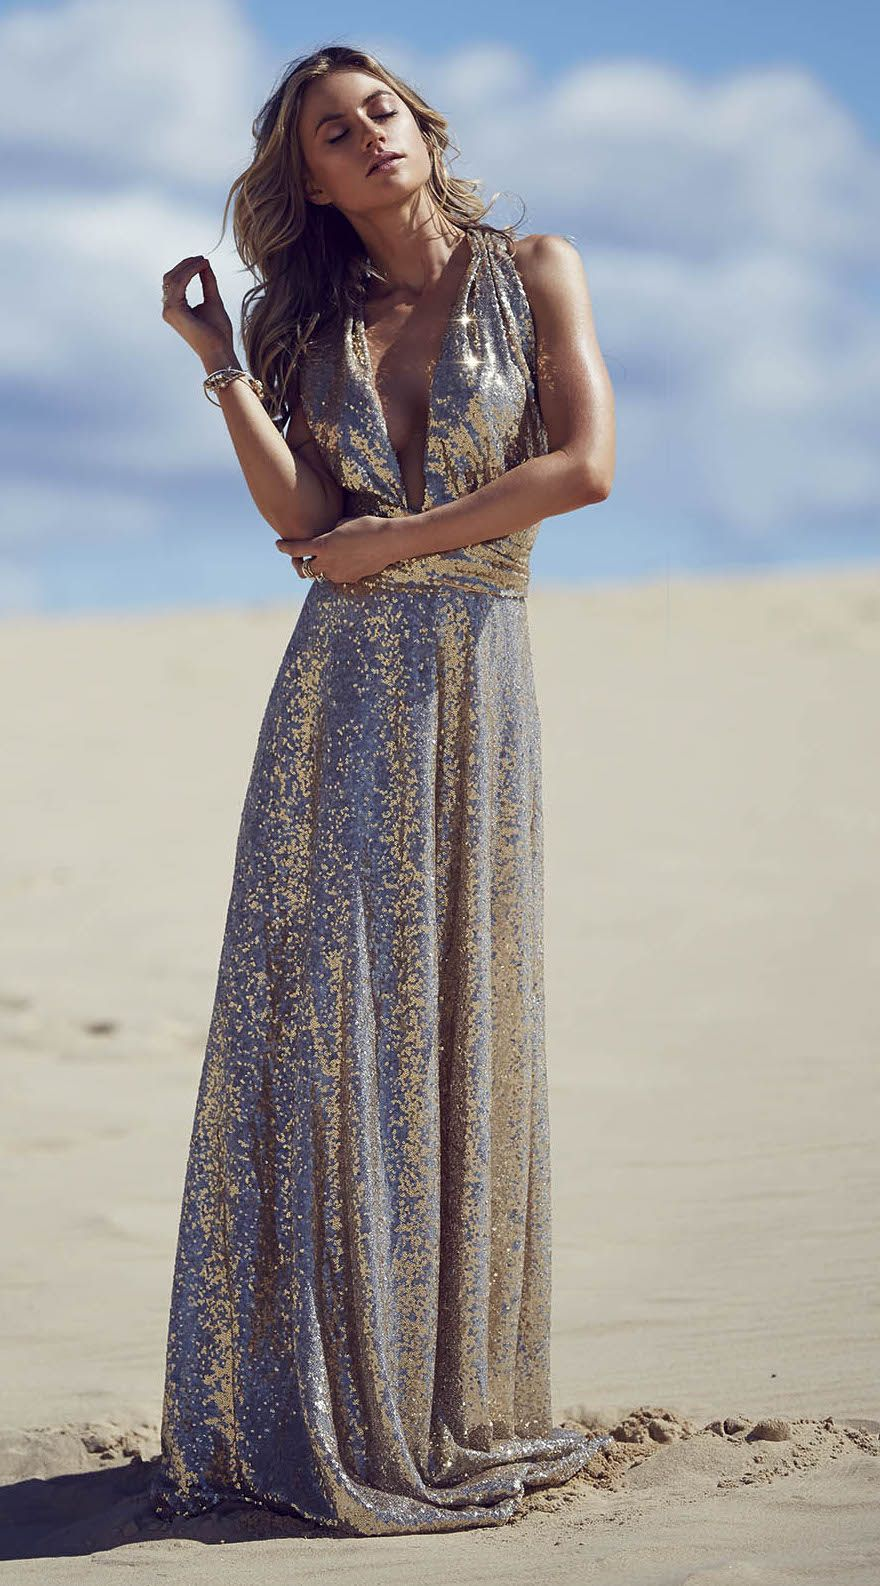 30bea43df69 This gold champagne dress is out of this world gorgeous!